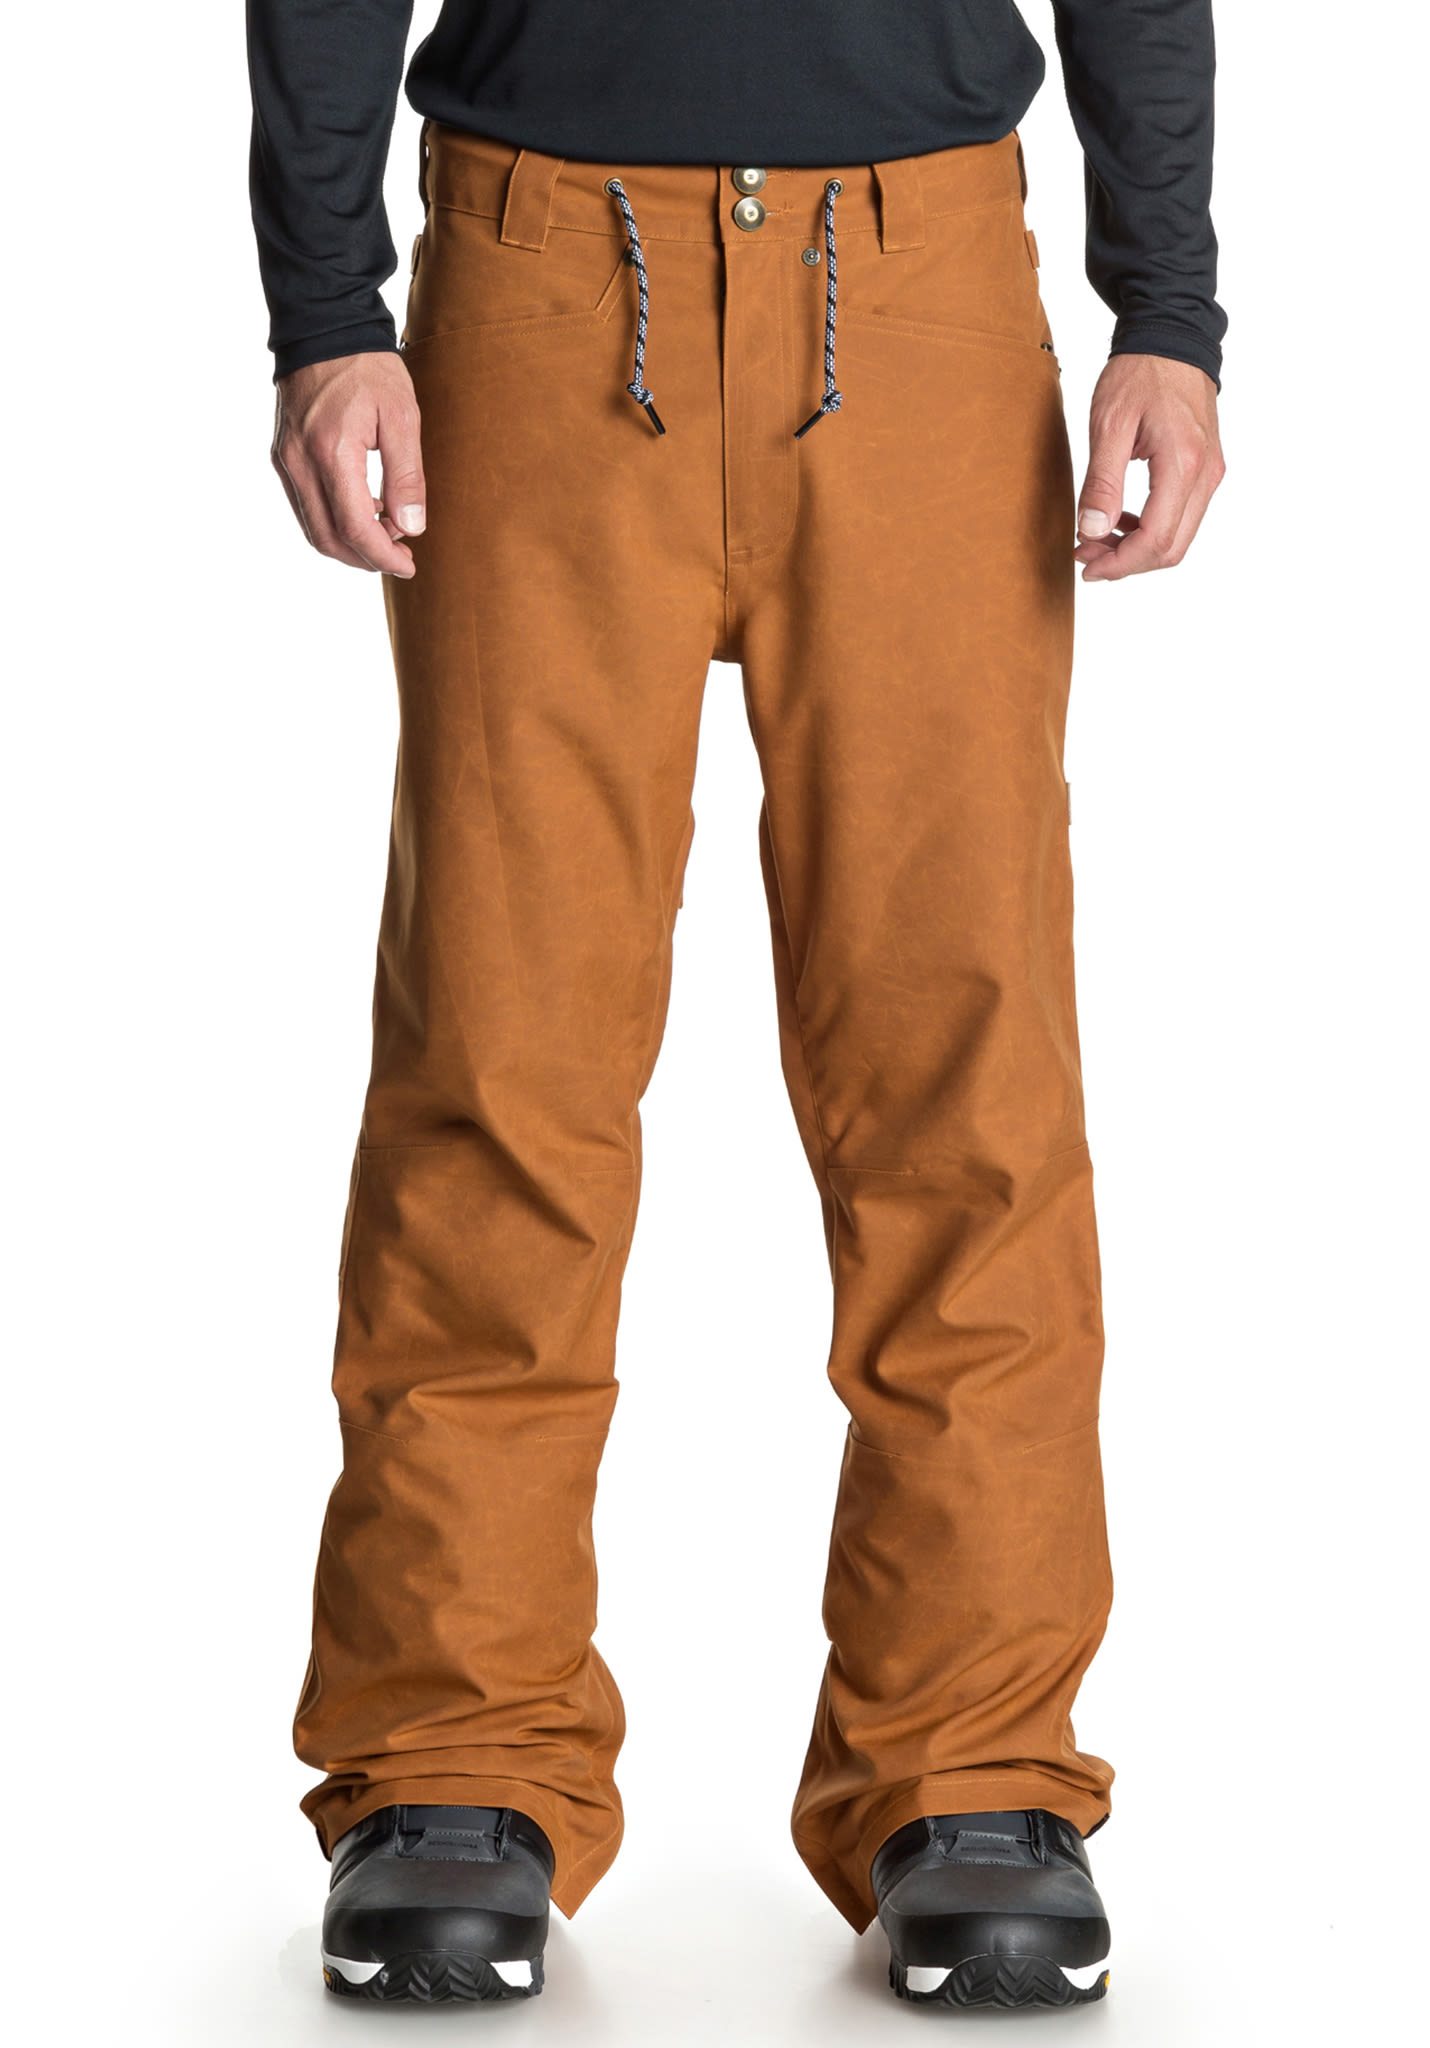 95625144d20 DC Relay - Snowboard Pants for Men - Brown - Planet Sports